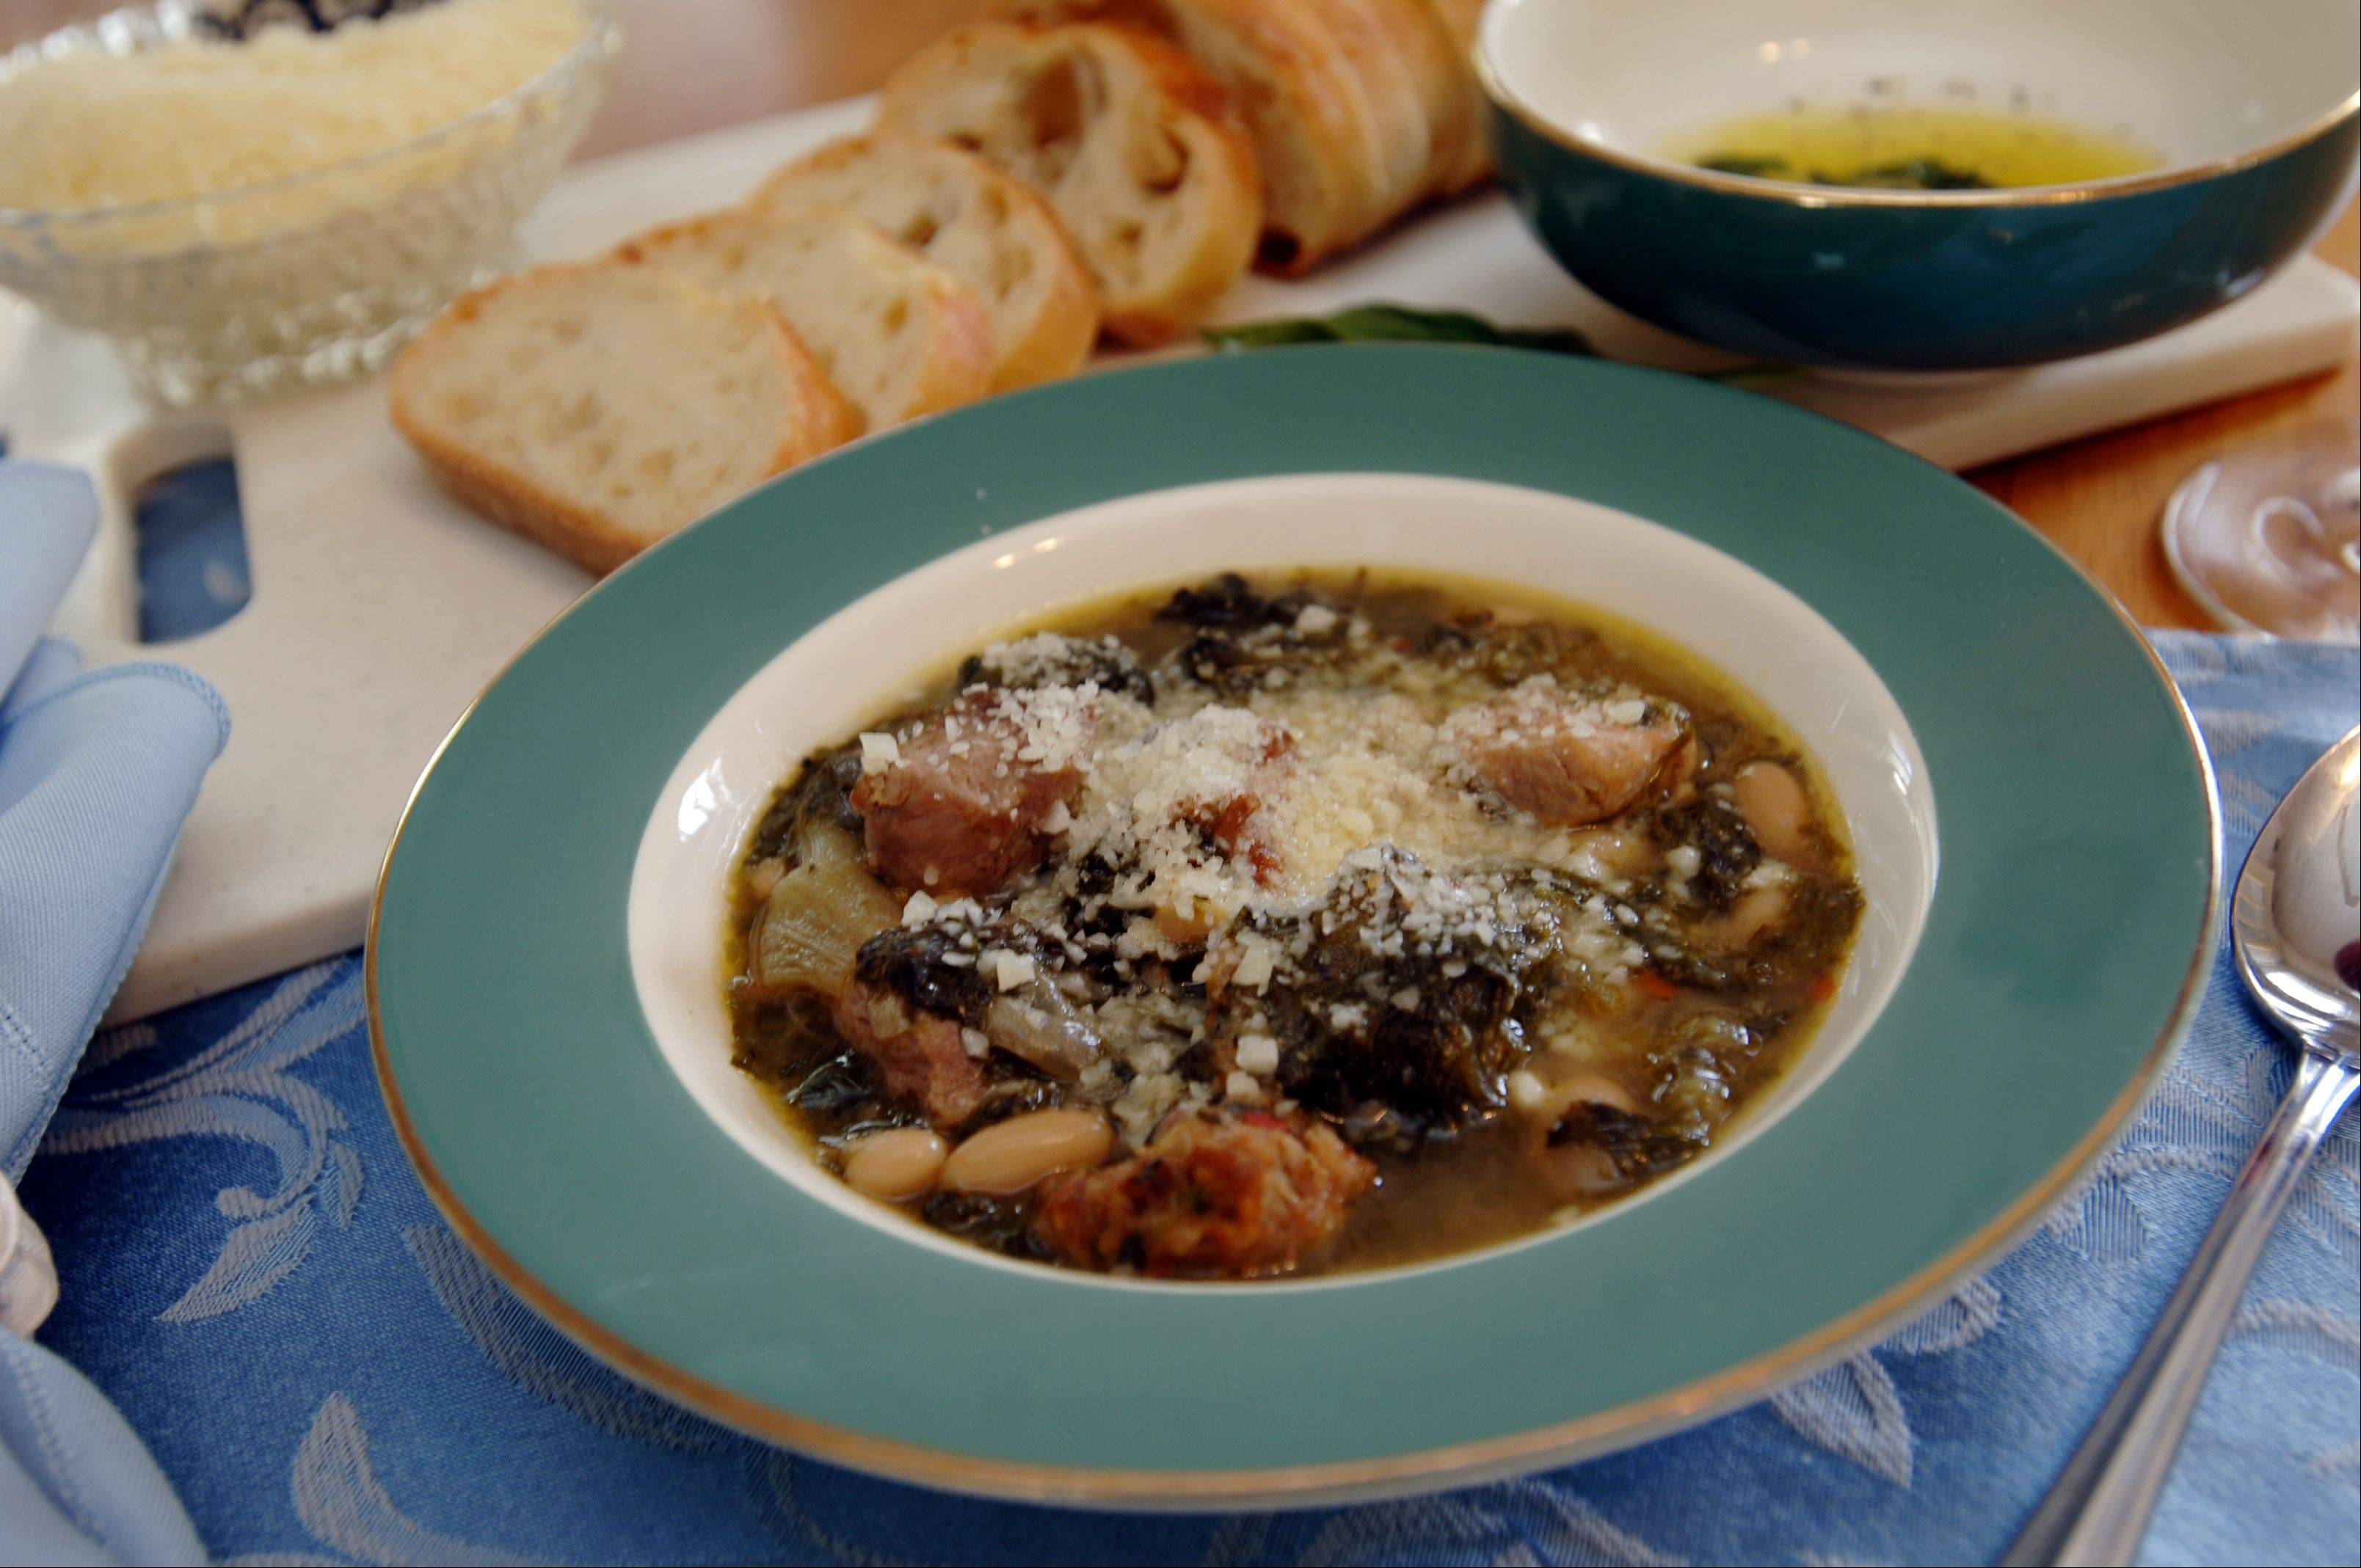 Escarole and bean soup has been a favorite of Patrice Marotta since she was a child.